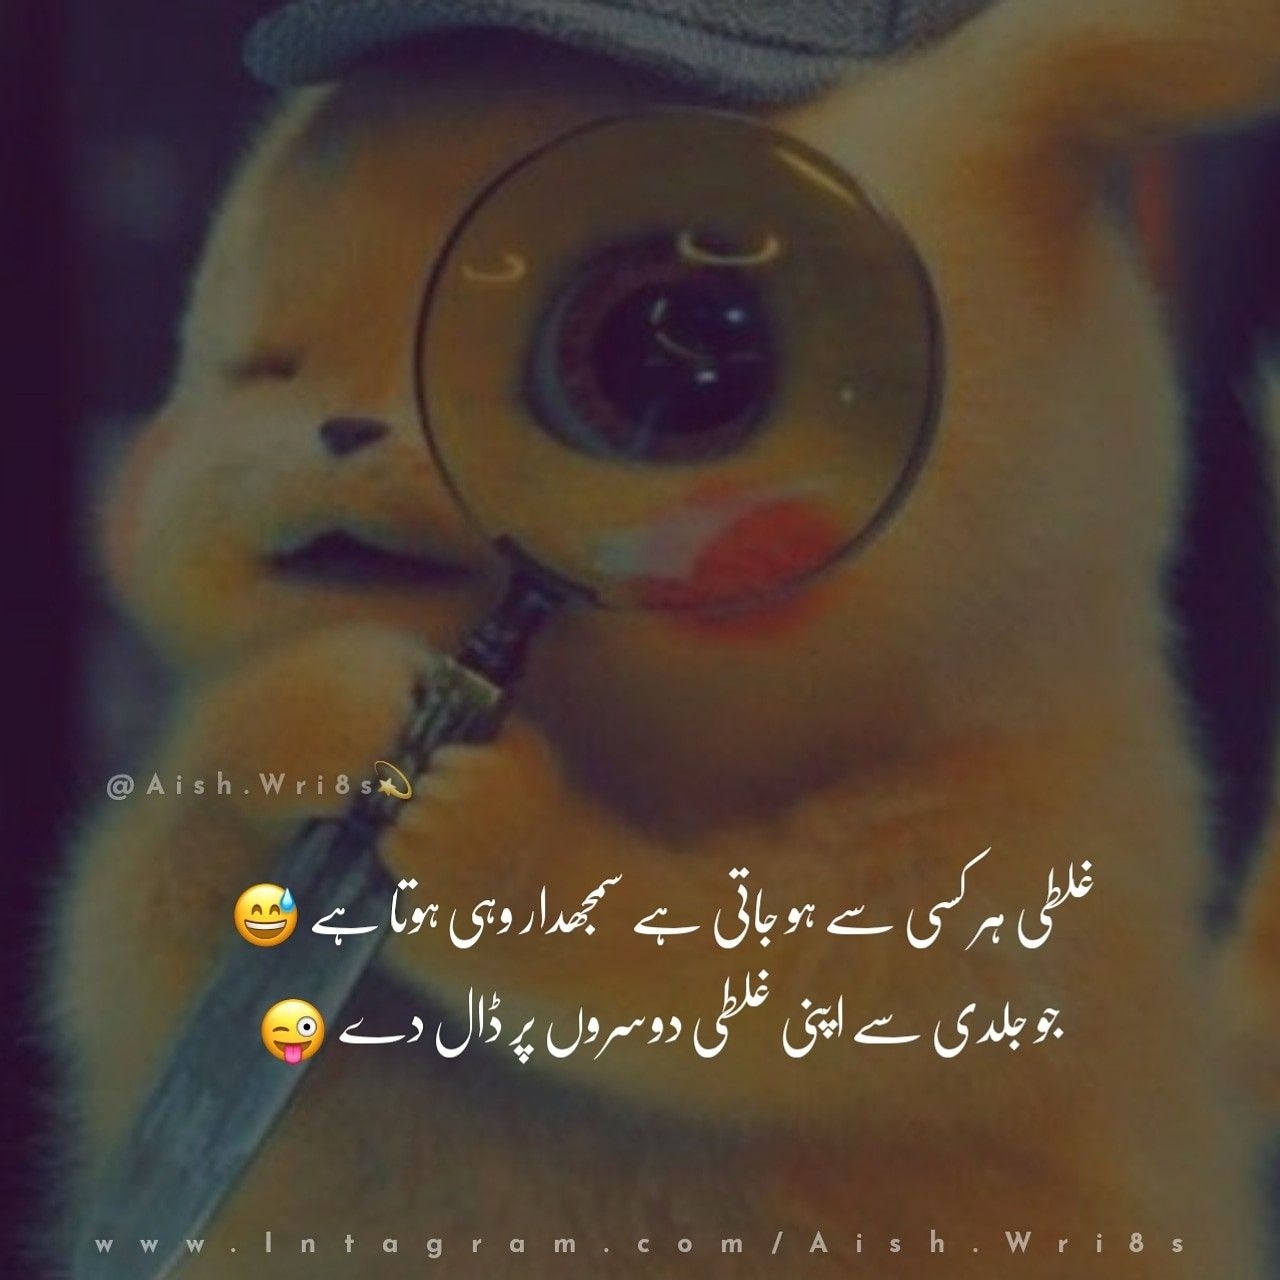 Follow Me On Instagram Aish Wri8s For Amazing Poetry And Videos Funny Quotes In Urdu Fun Quotes Funny Urdu Funny Quotes